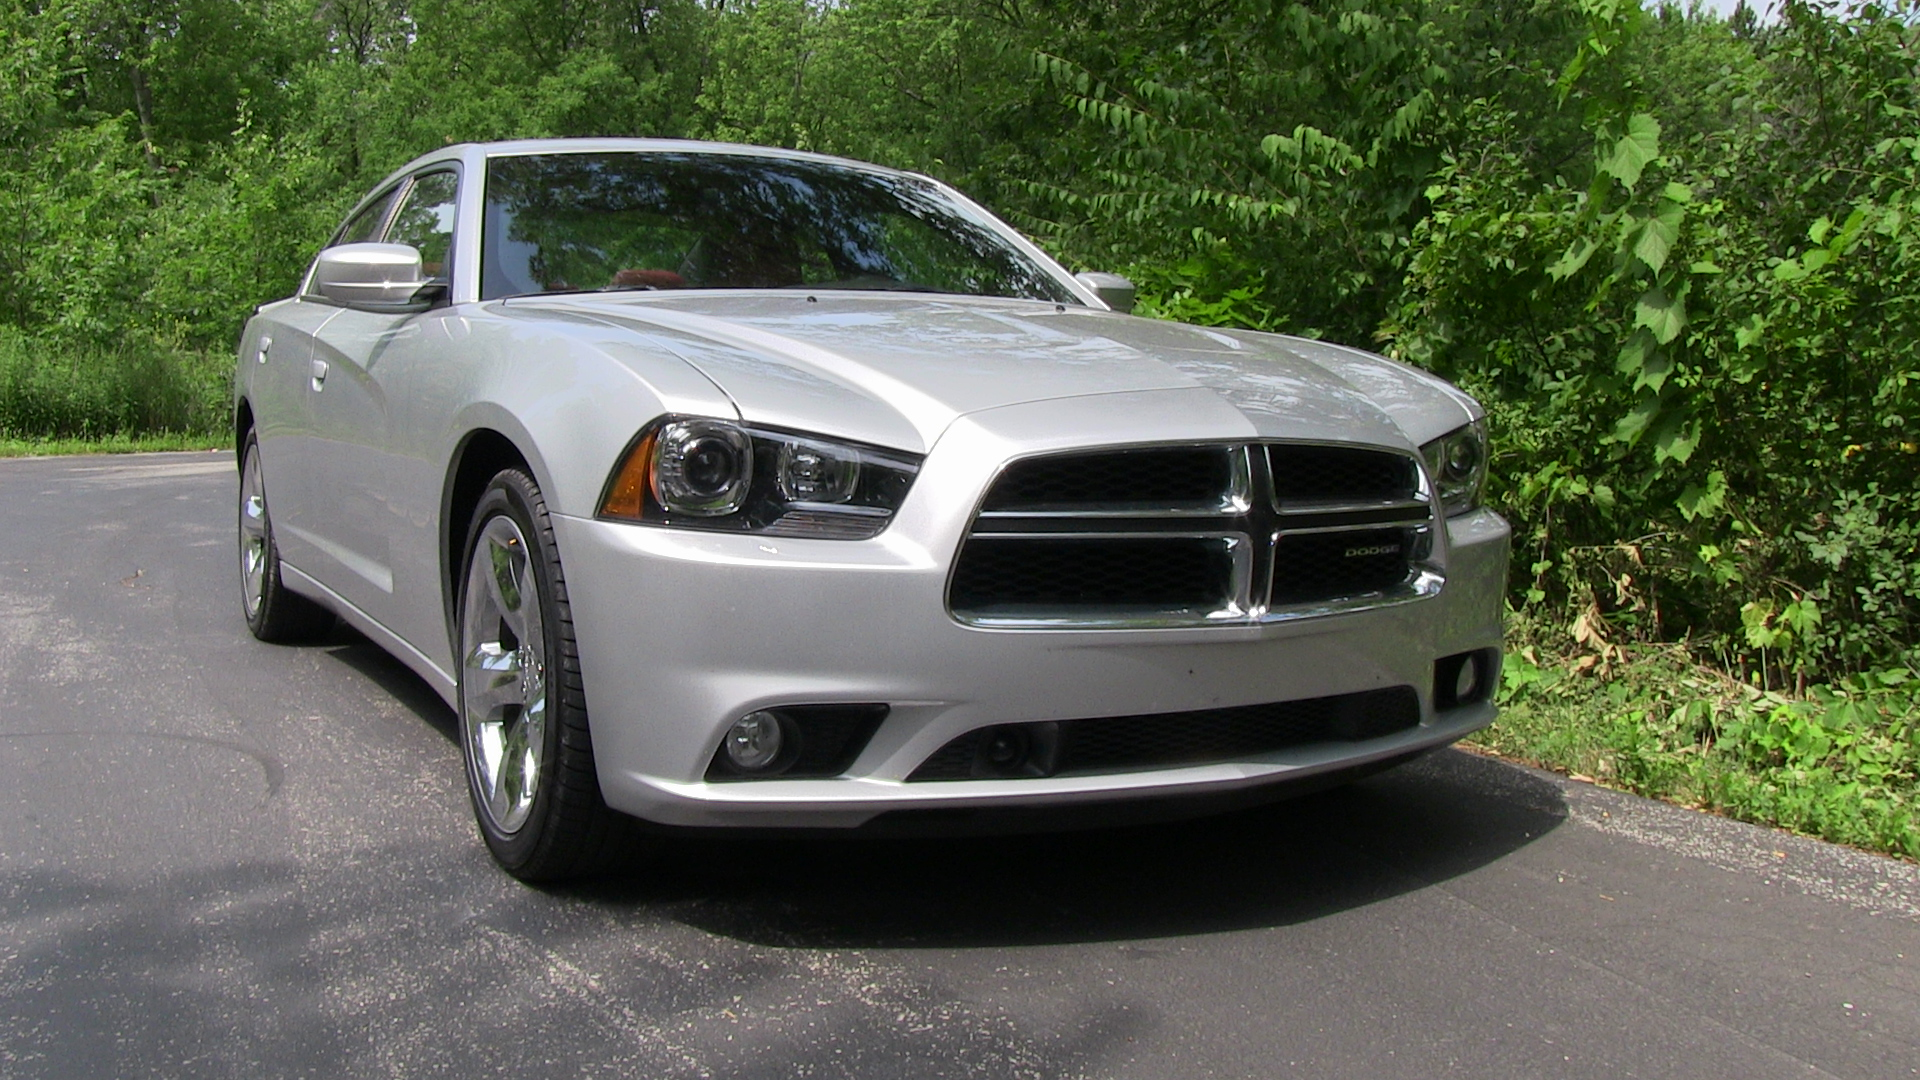 Video 2012 Dodge Charger Sxt 0 60 Mph Performance Test The Fast